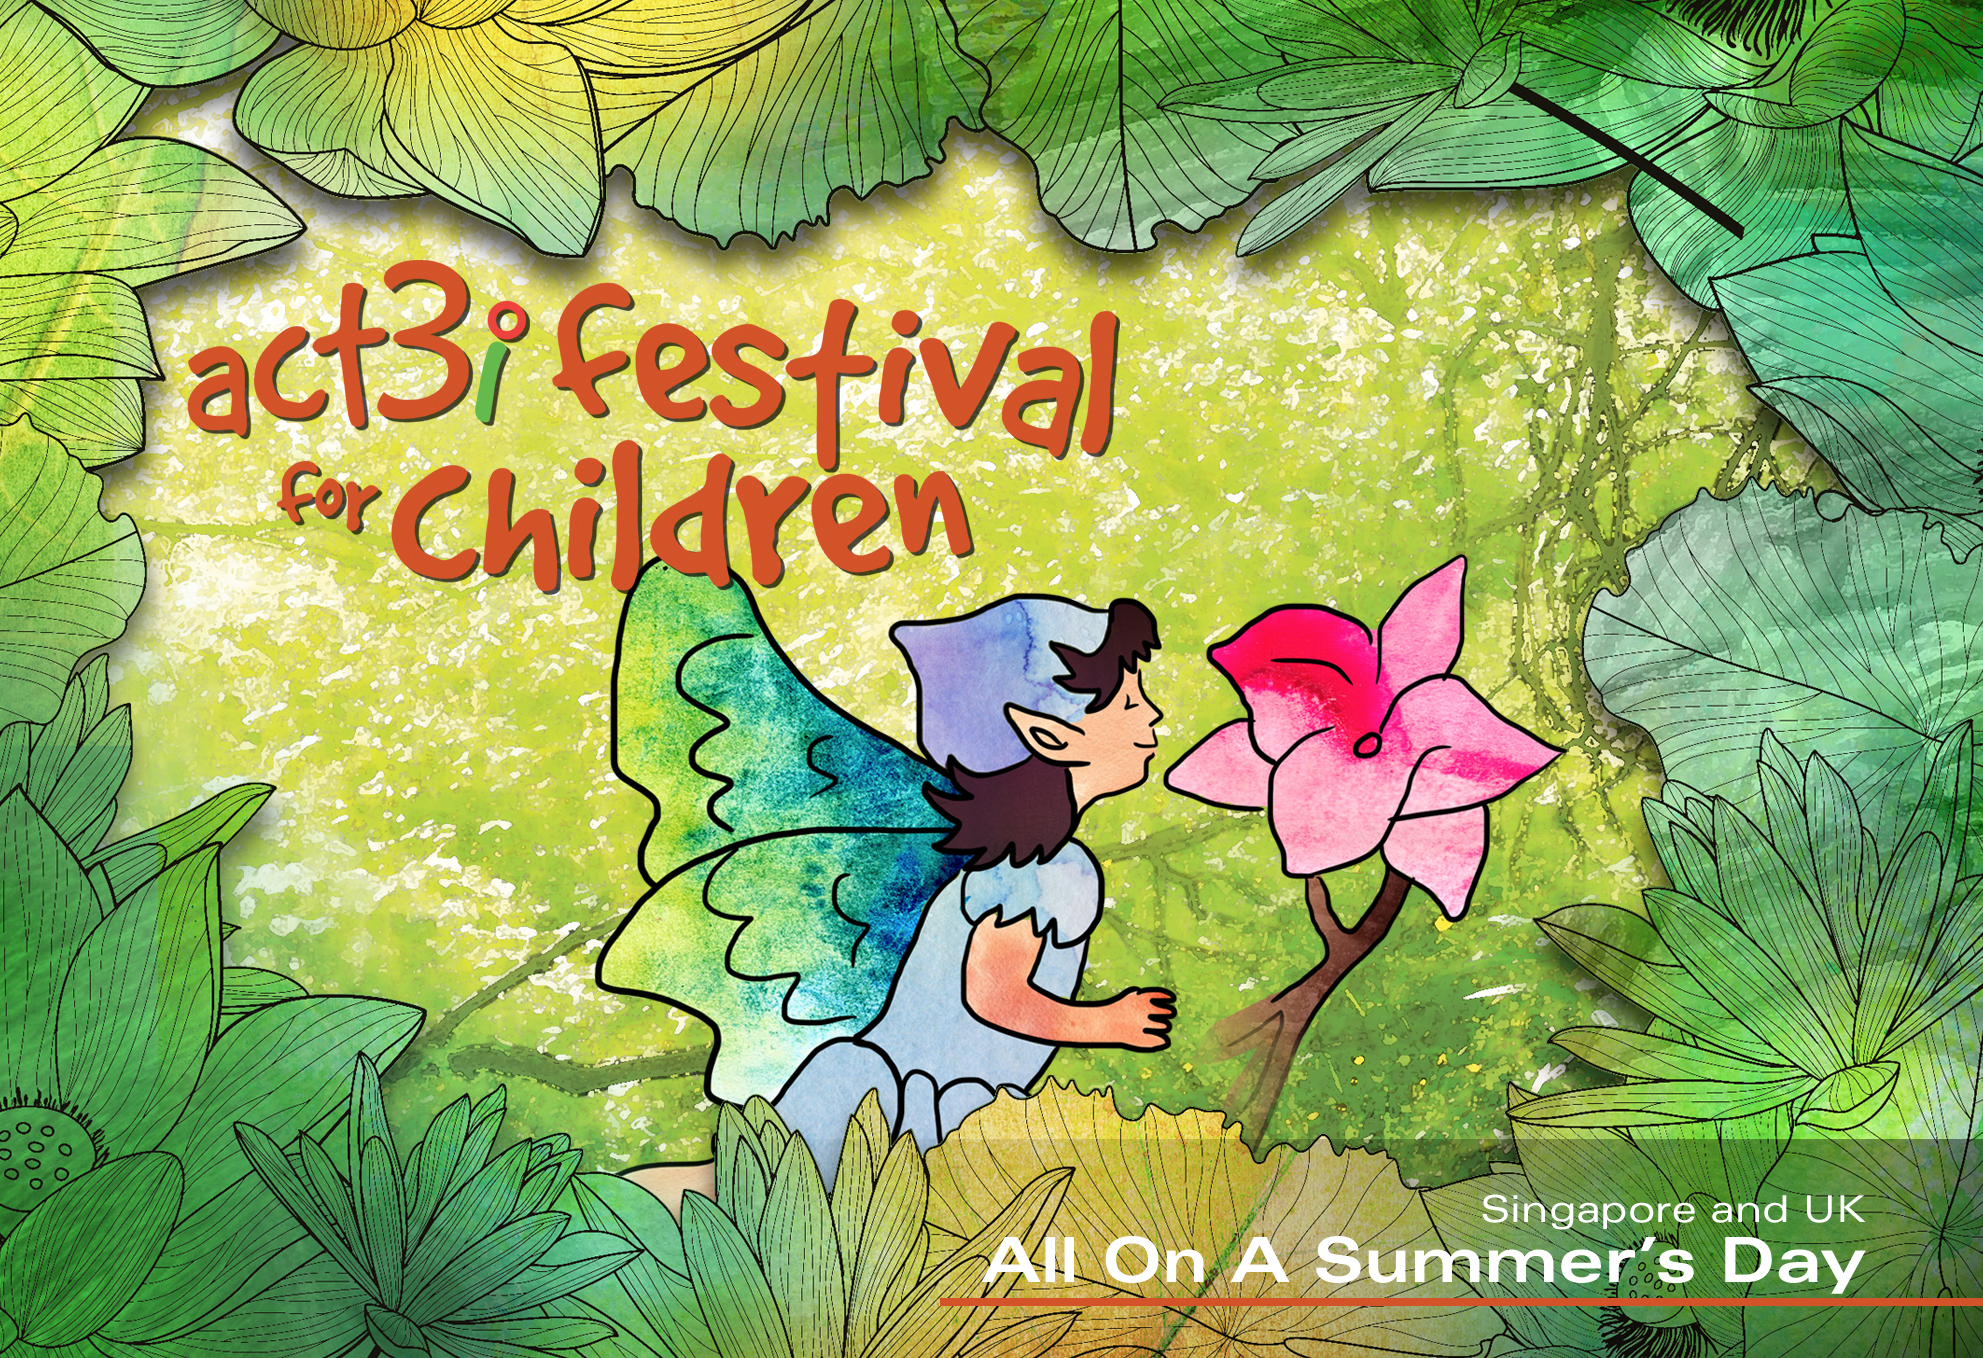 ACT 3i Festival for Children All On A Summer's Day (with logo)